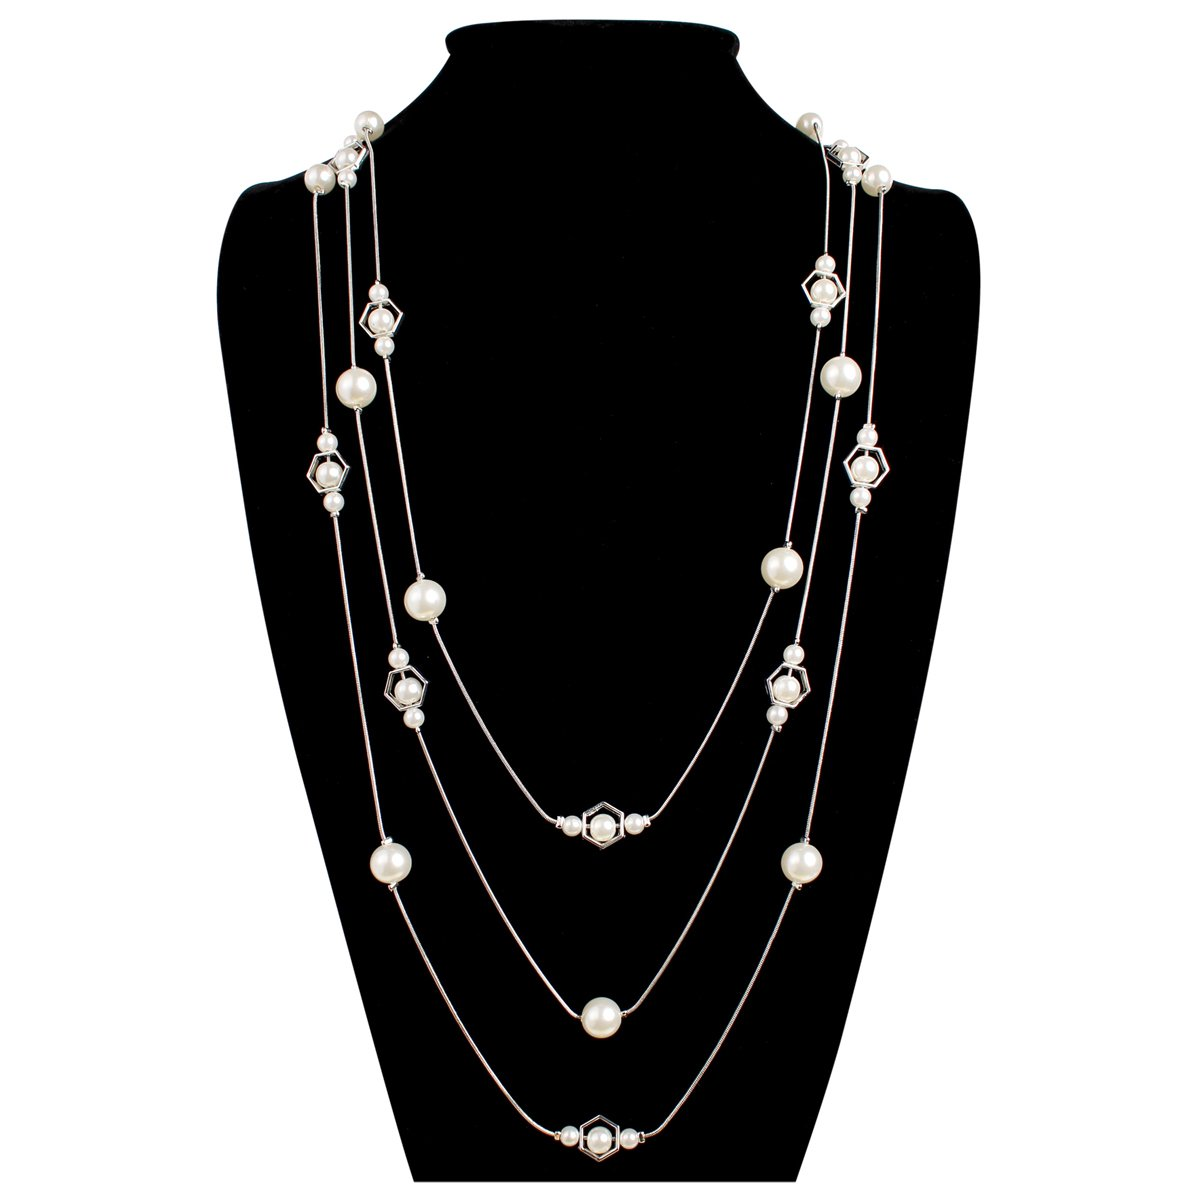 MYS Collection Women's Octagon Acrylic Pearl Chain Necklace HDN1348S